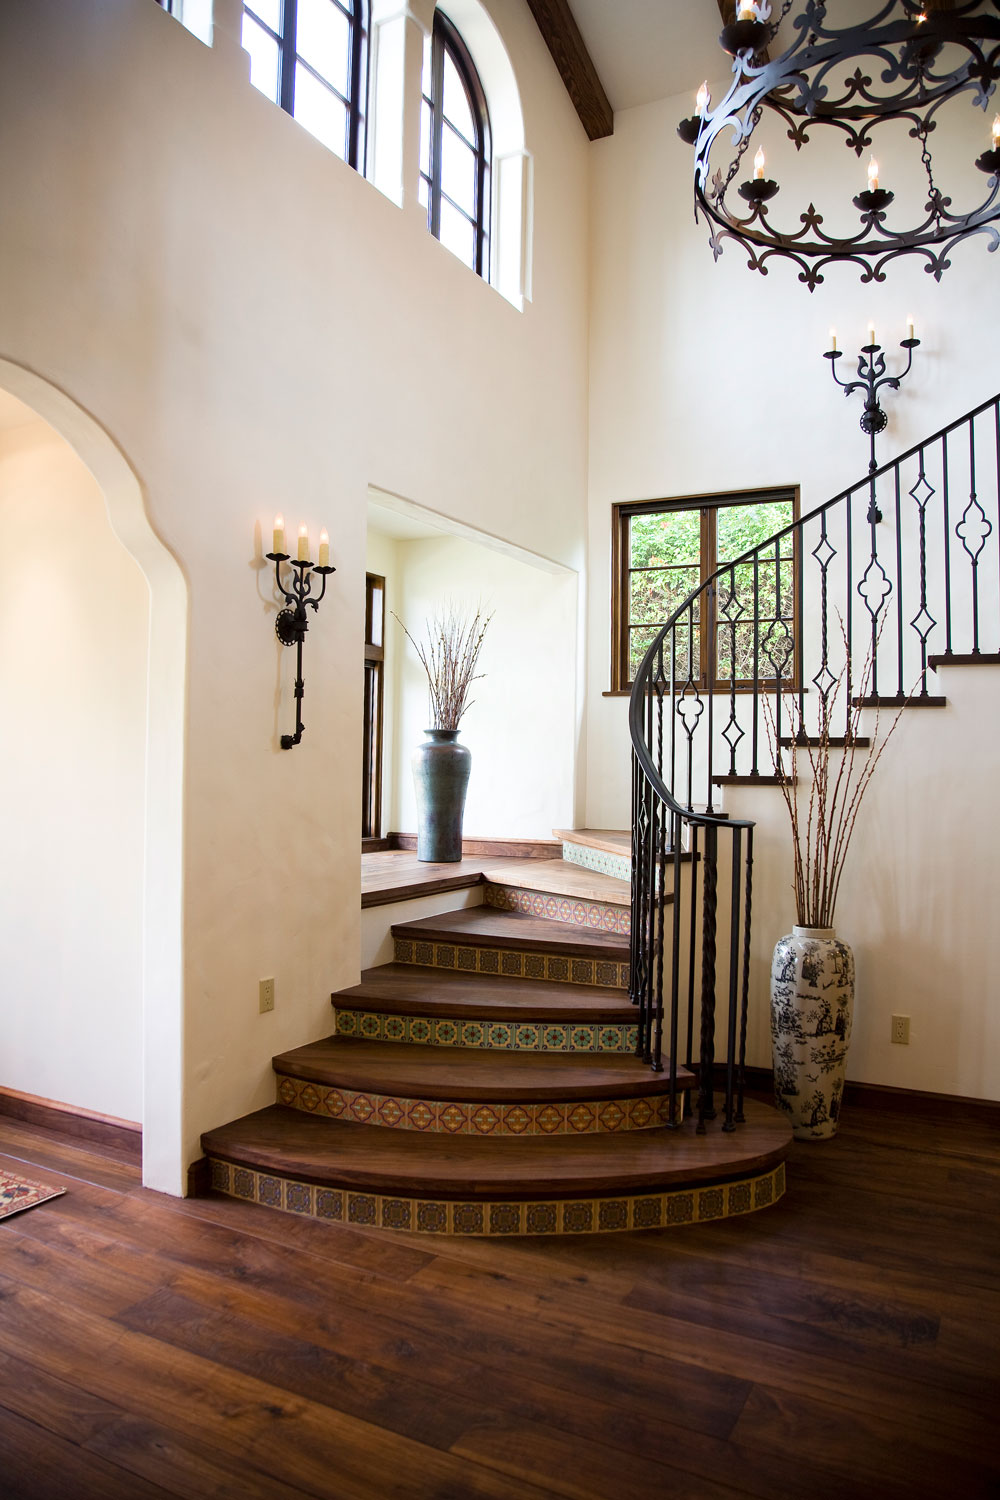 09-Spanish-style-staircase-tile-risers-iron-railing-gary-drake-general-contractor.jpg